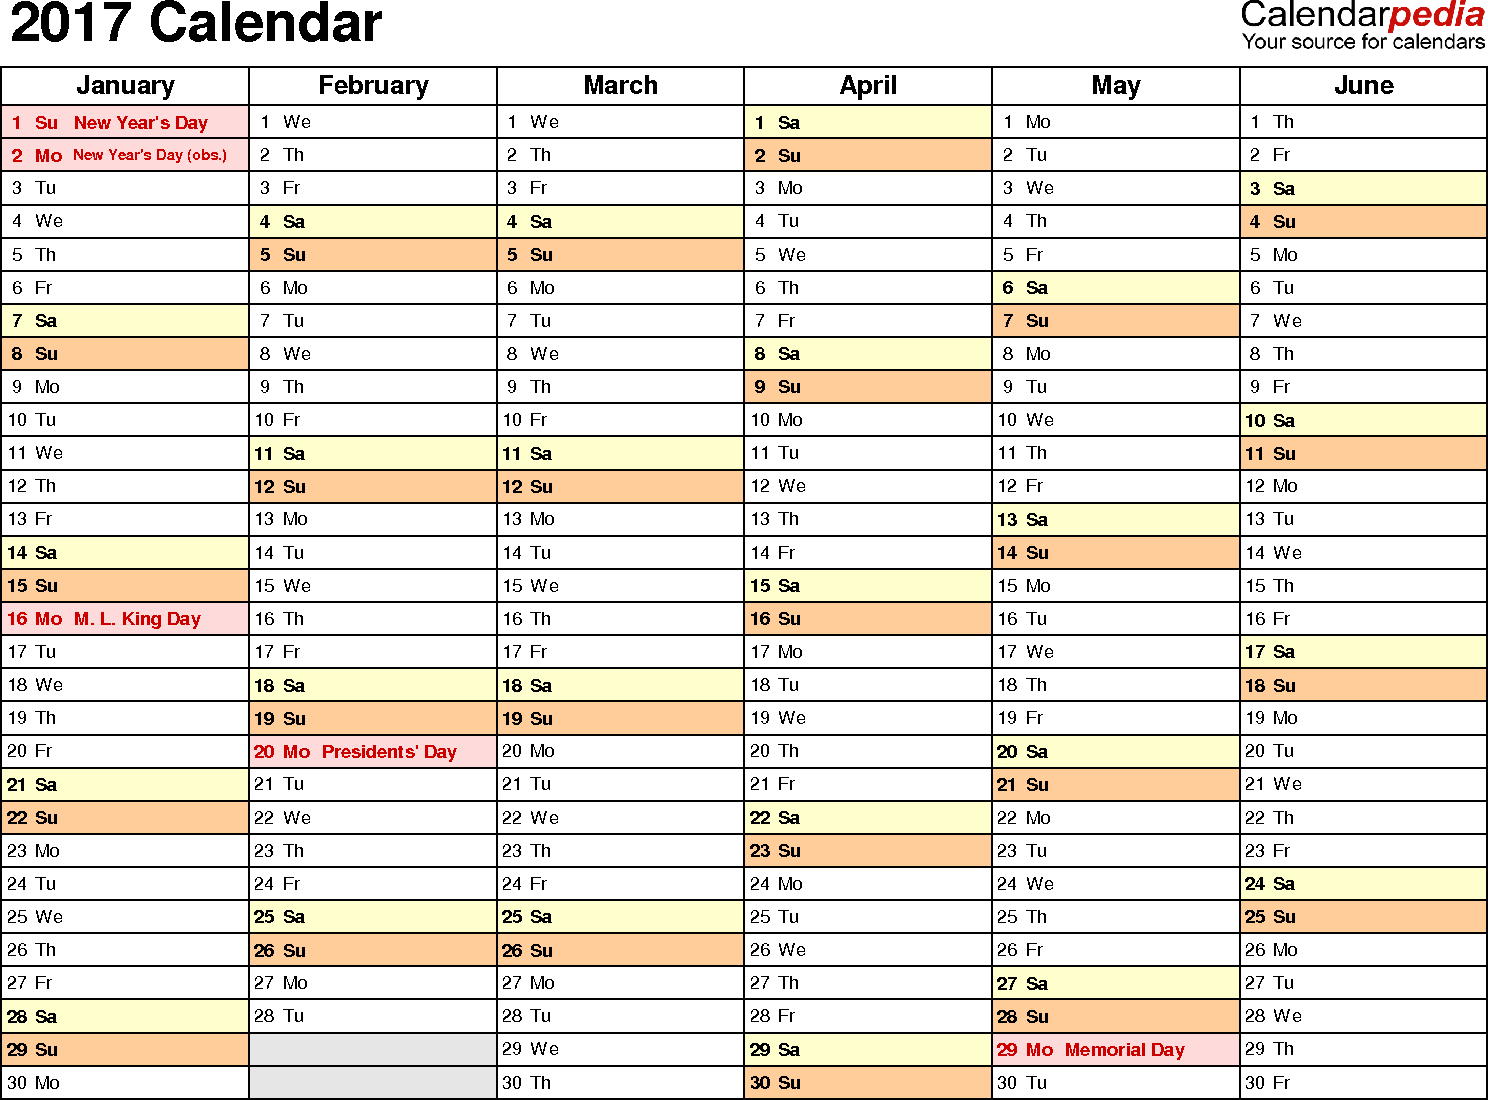 Ediblewildsus  Seductive  Calendar Excel  My Cms With Lovable Template   Calendar For With Captivating How To Repair Excel File Also How To Make A Timeline On Excel In Addition Monthly Employee Schedule Template Excel And Excel Linear Regression Formula As Well As Px Excel Additionally Excel Autofilter Vba From Abefendicafecom With Ediblewildsus  Lovable  Calendar Excel  My Cms With Captivating Template   Calendar For And Seductive How To Repair Excel File Also How To Make A Timeline On Excel In Addition Monthly Employee Schedule Template Excel From Abefendicafecom